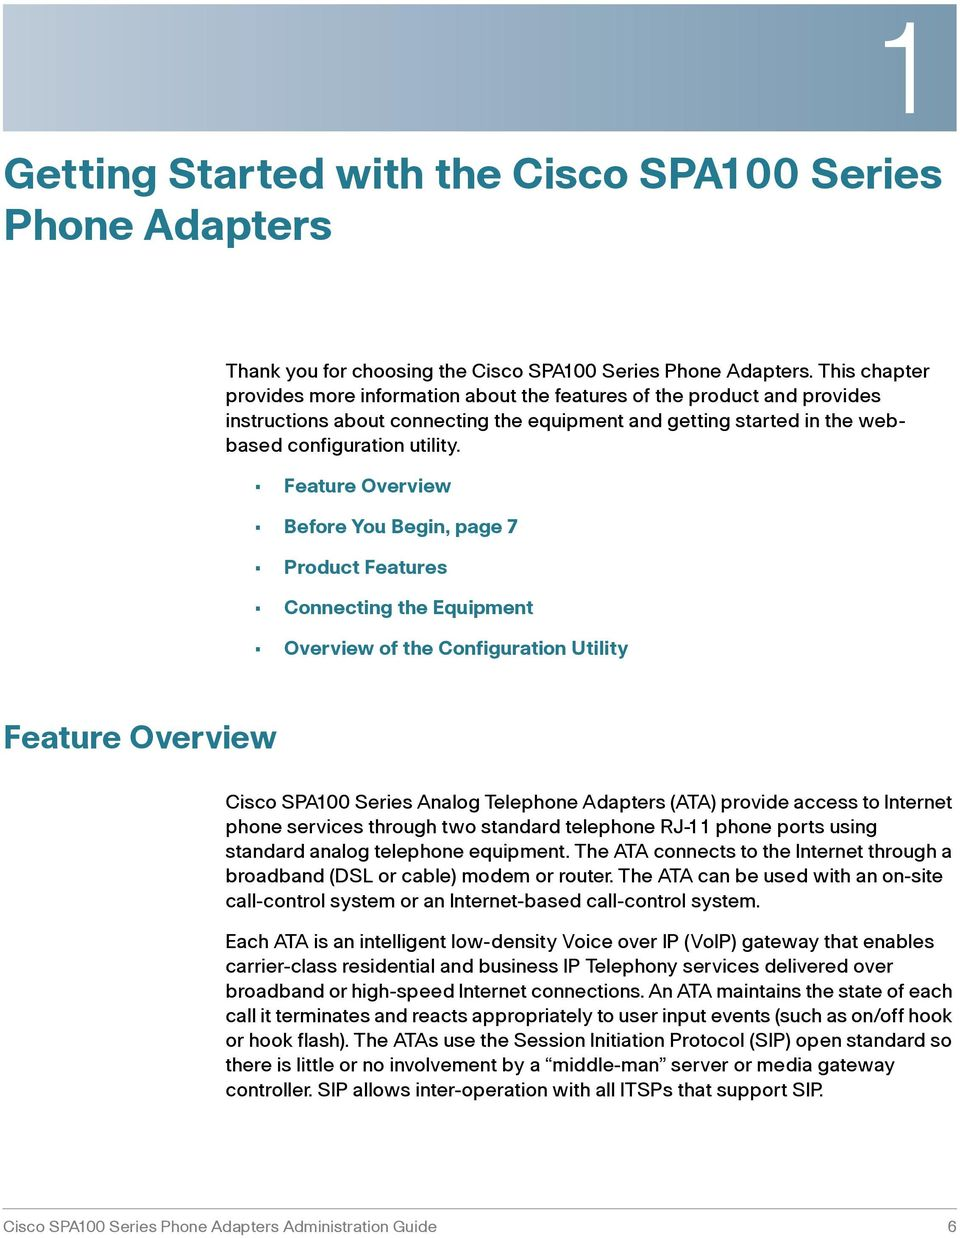 Feature Overview Before You Begin, page 7 Product Features Connecting the Equipment Overview of the Configuration Utility Feature Overview Cisco SPA100 Series Analog Telephone Adapters (ATA) provide